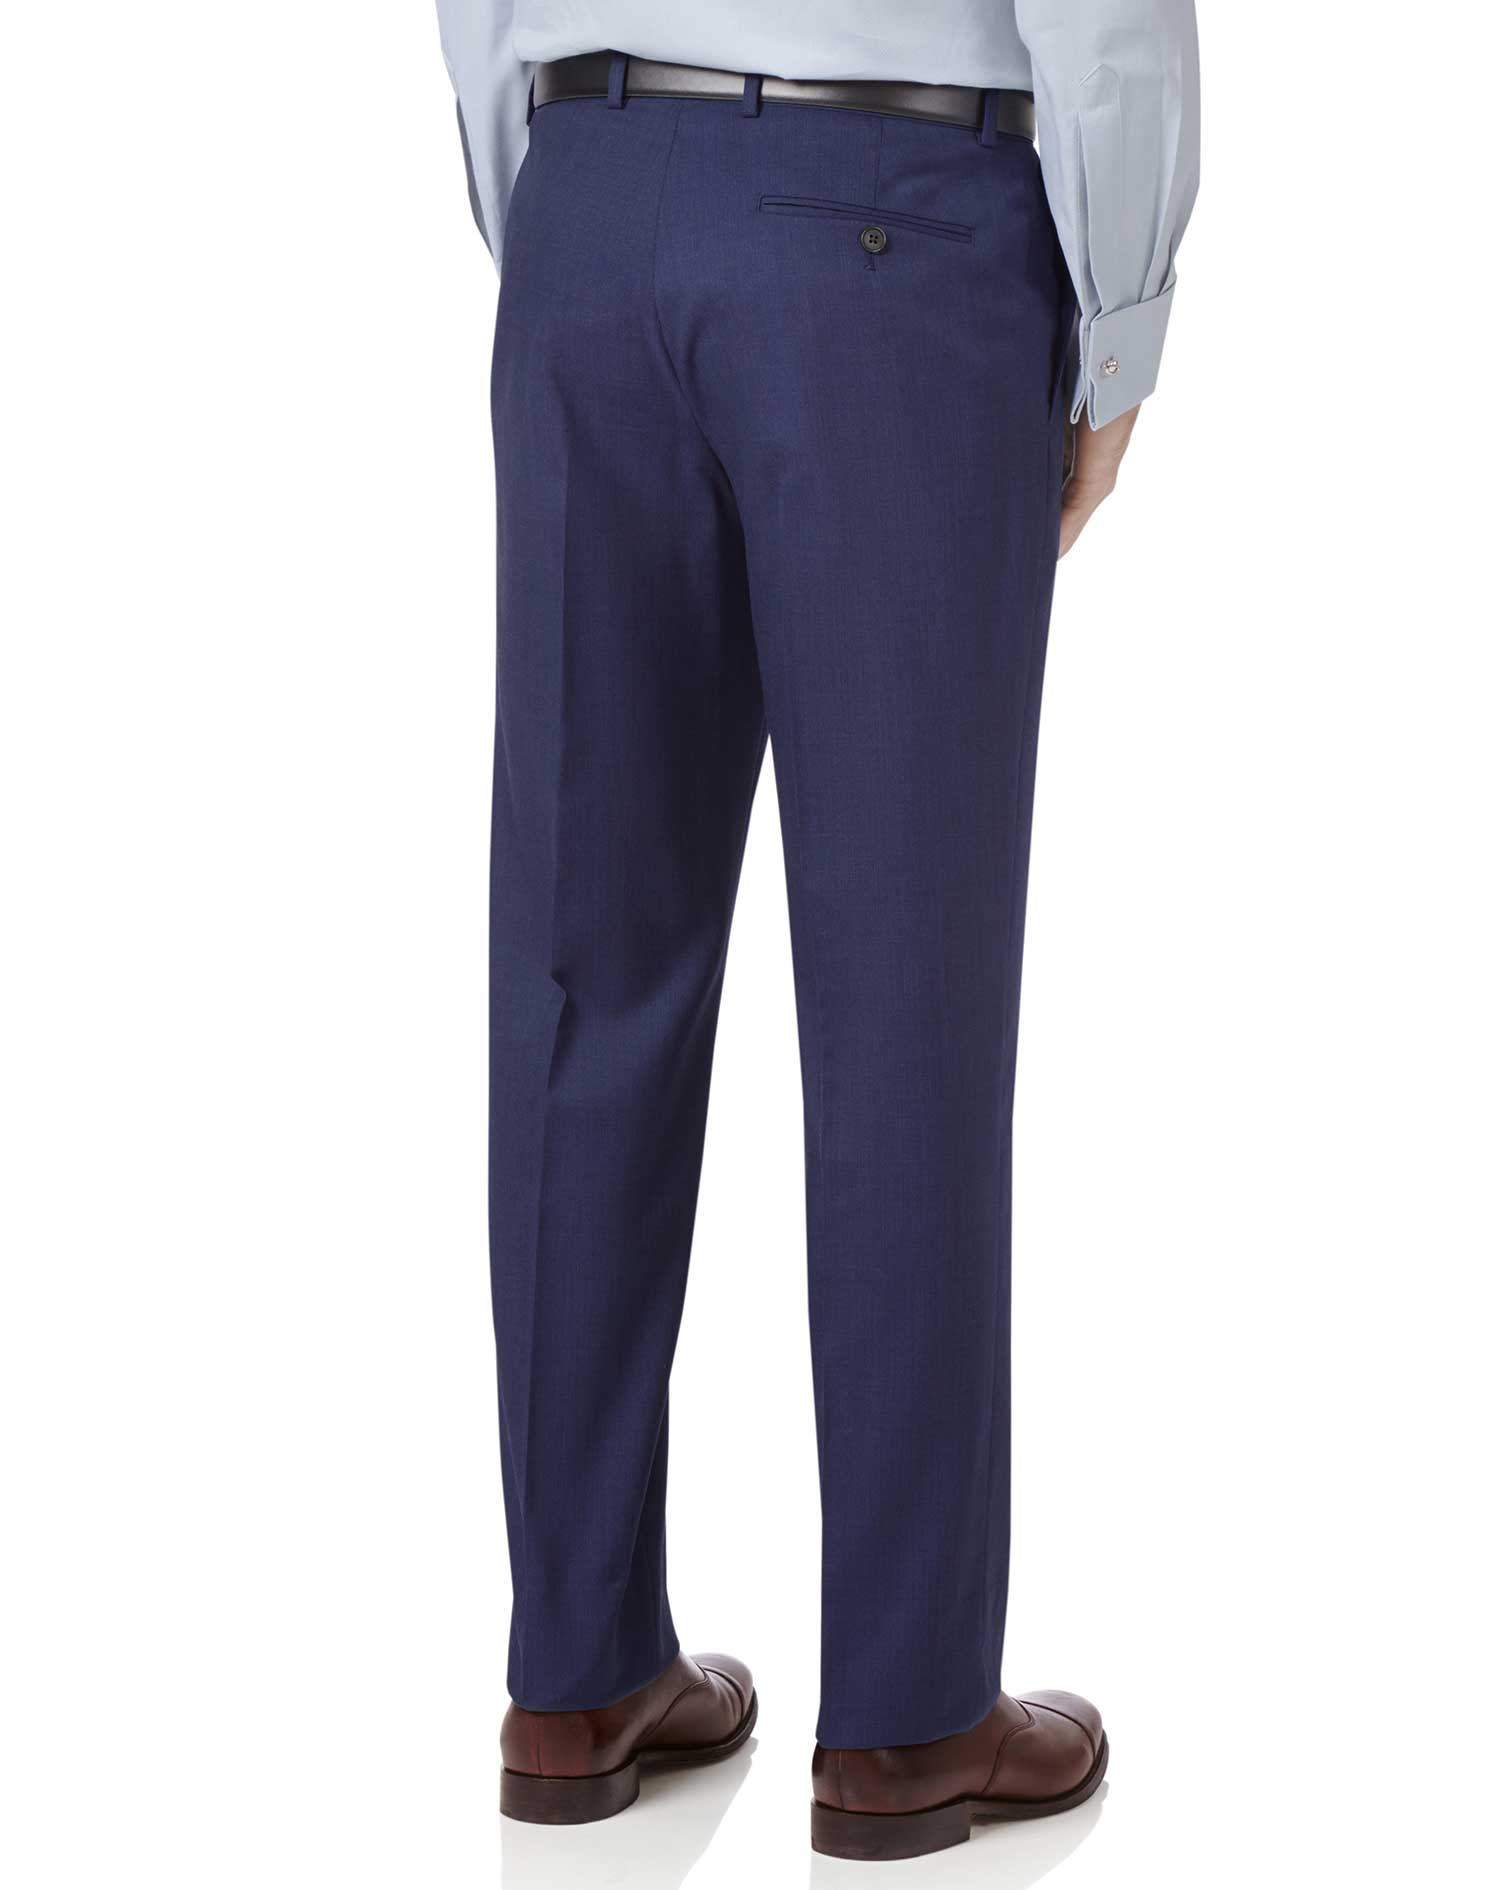 Indigo slim fit hairline business suit pants